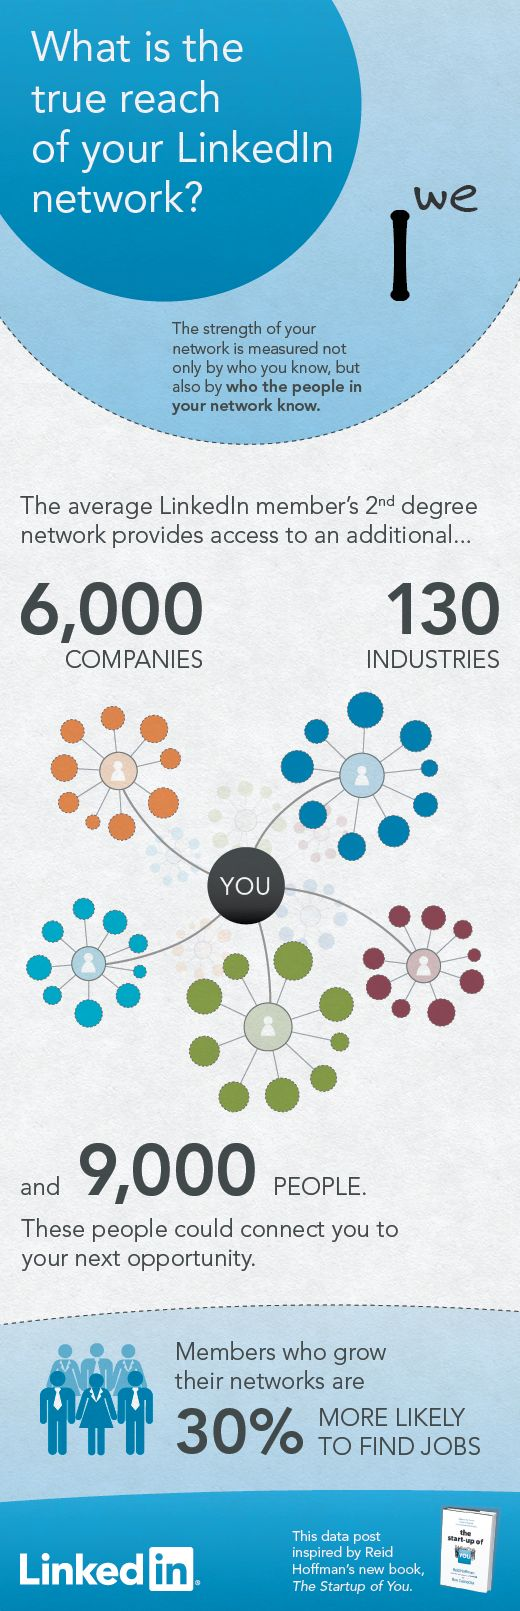 I to the We – What is the true reach of your LinkedIn Network?